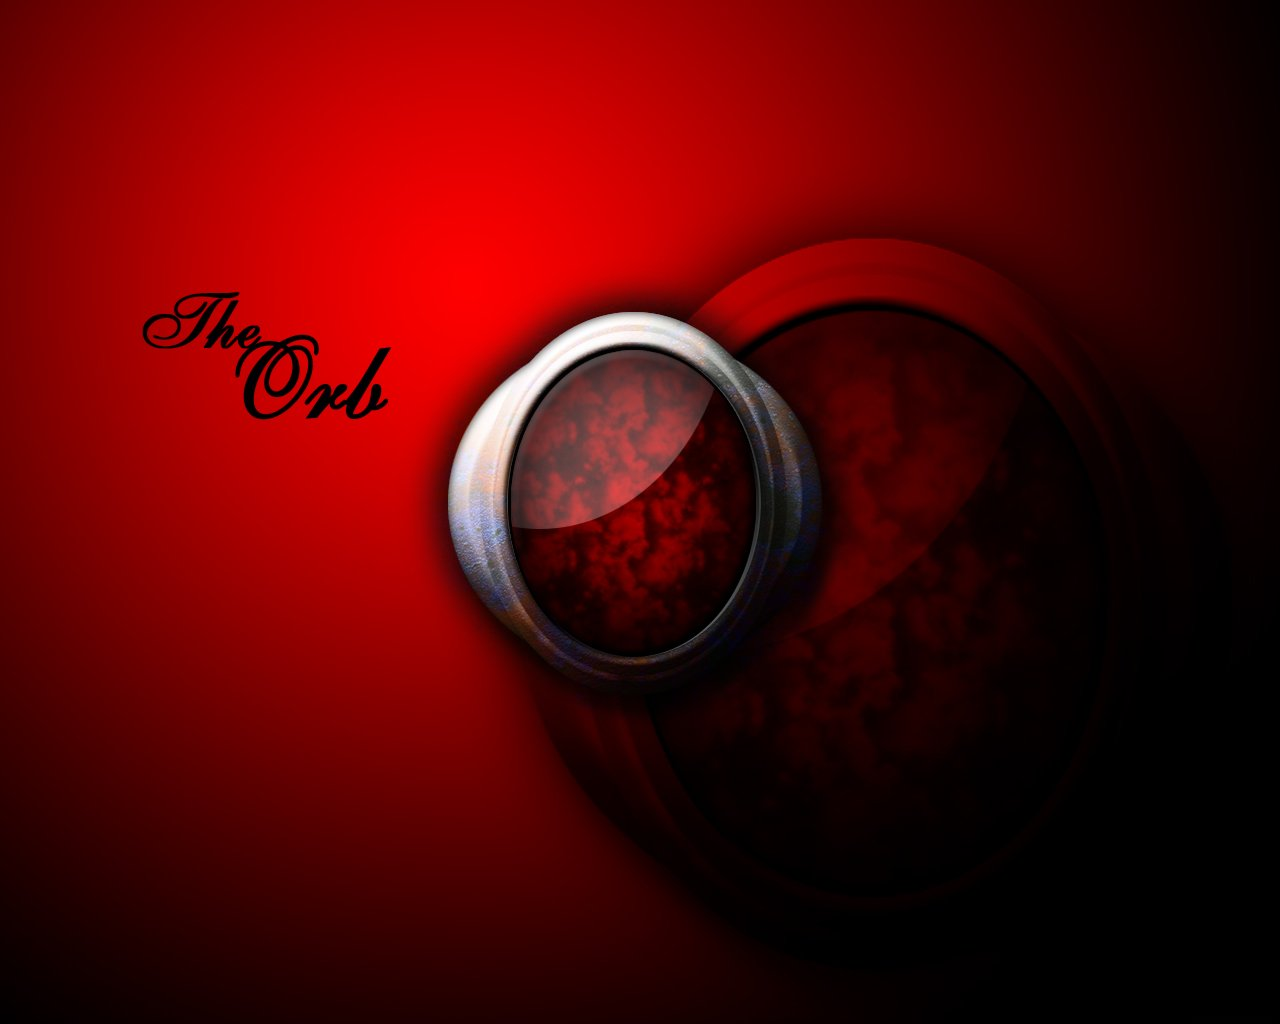 The Red Orb